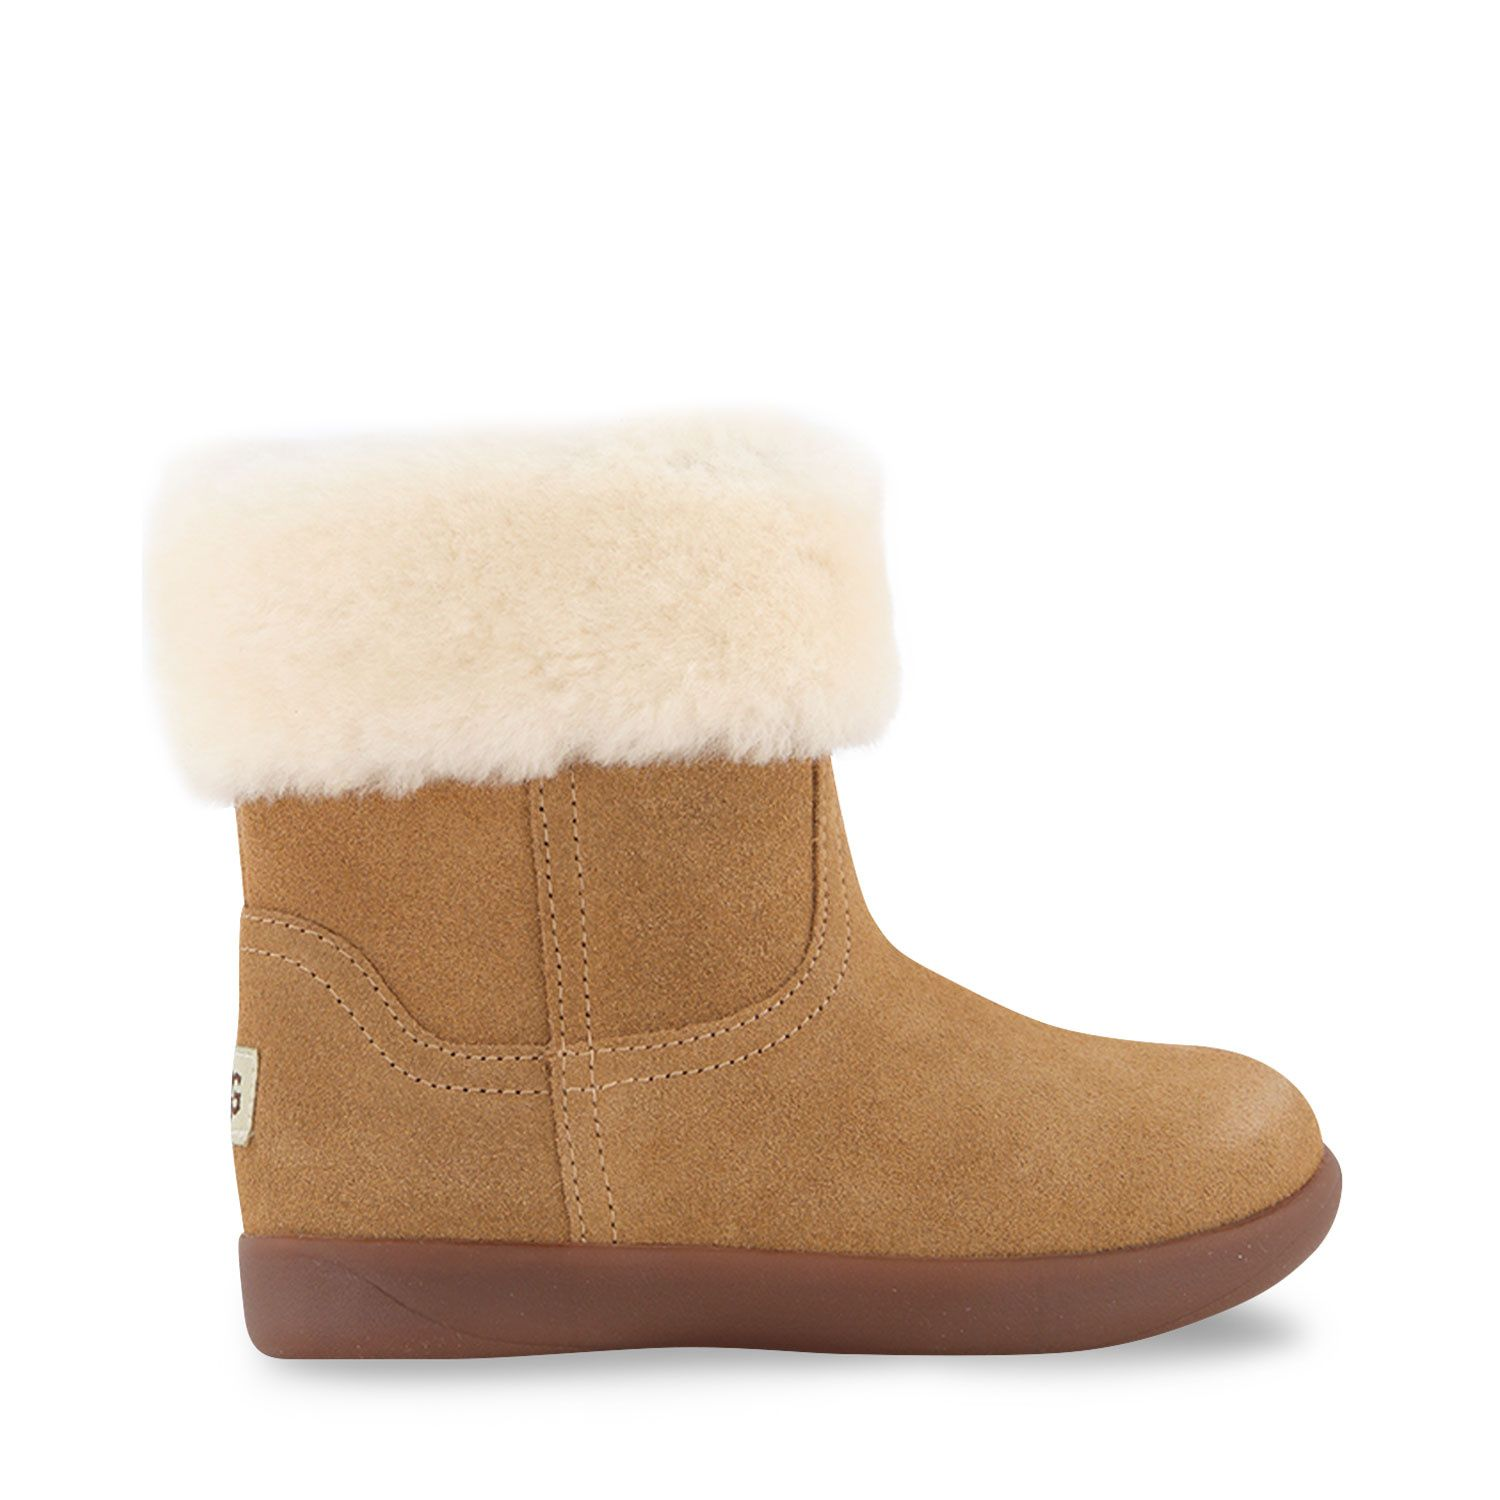 Picture of Ugg 1097034 kids boots camel